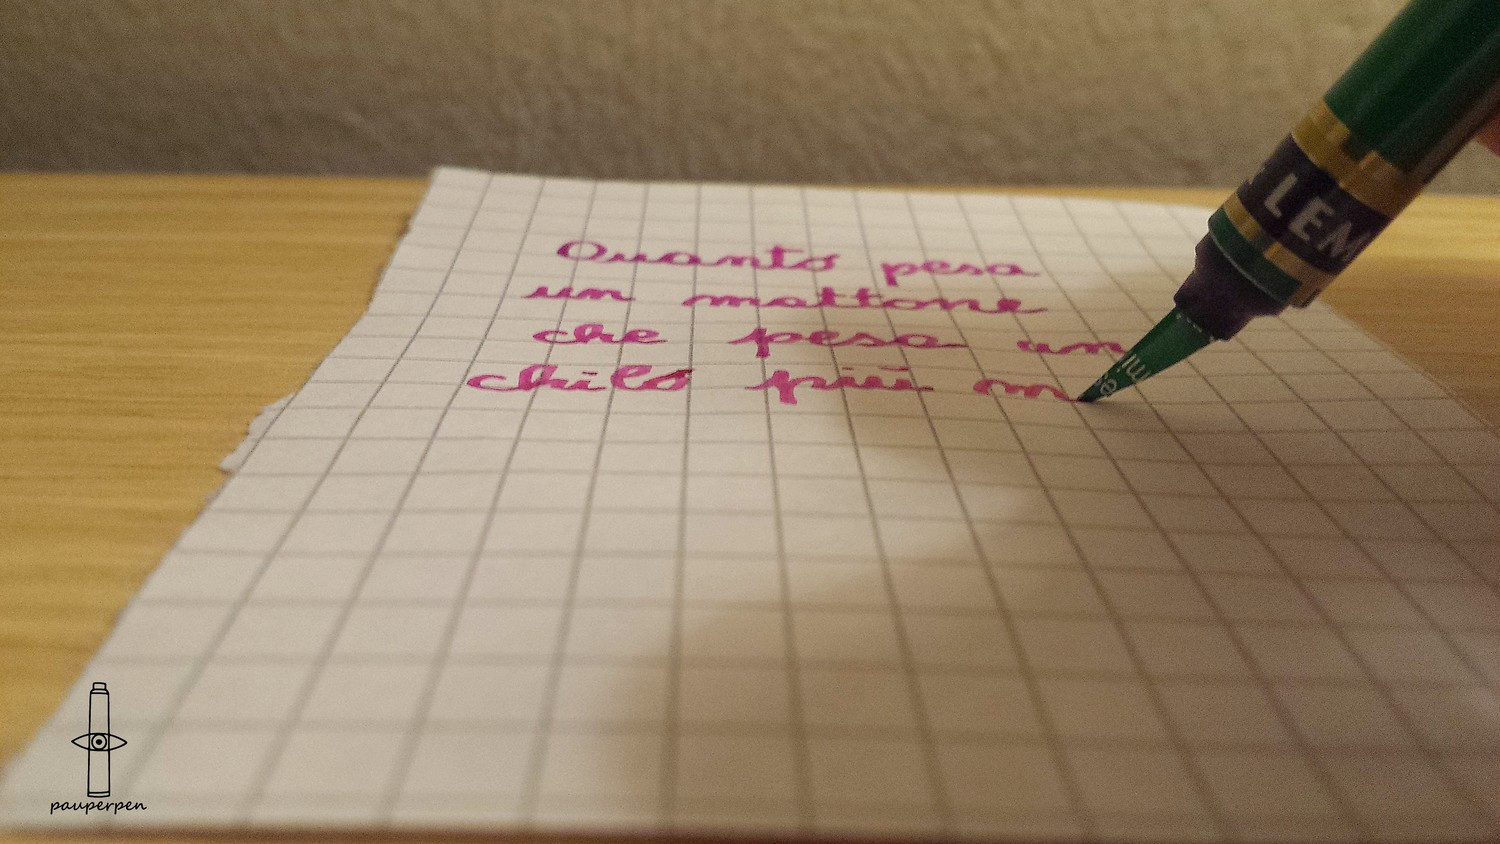 Green PauperPen with ColorSword nib - writing test 1.jpg